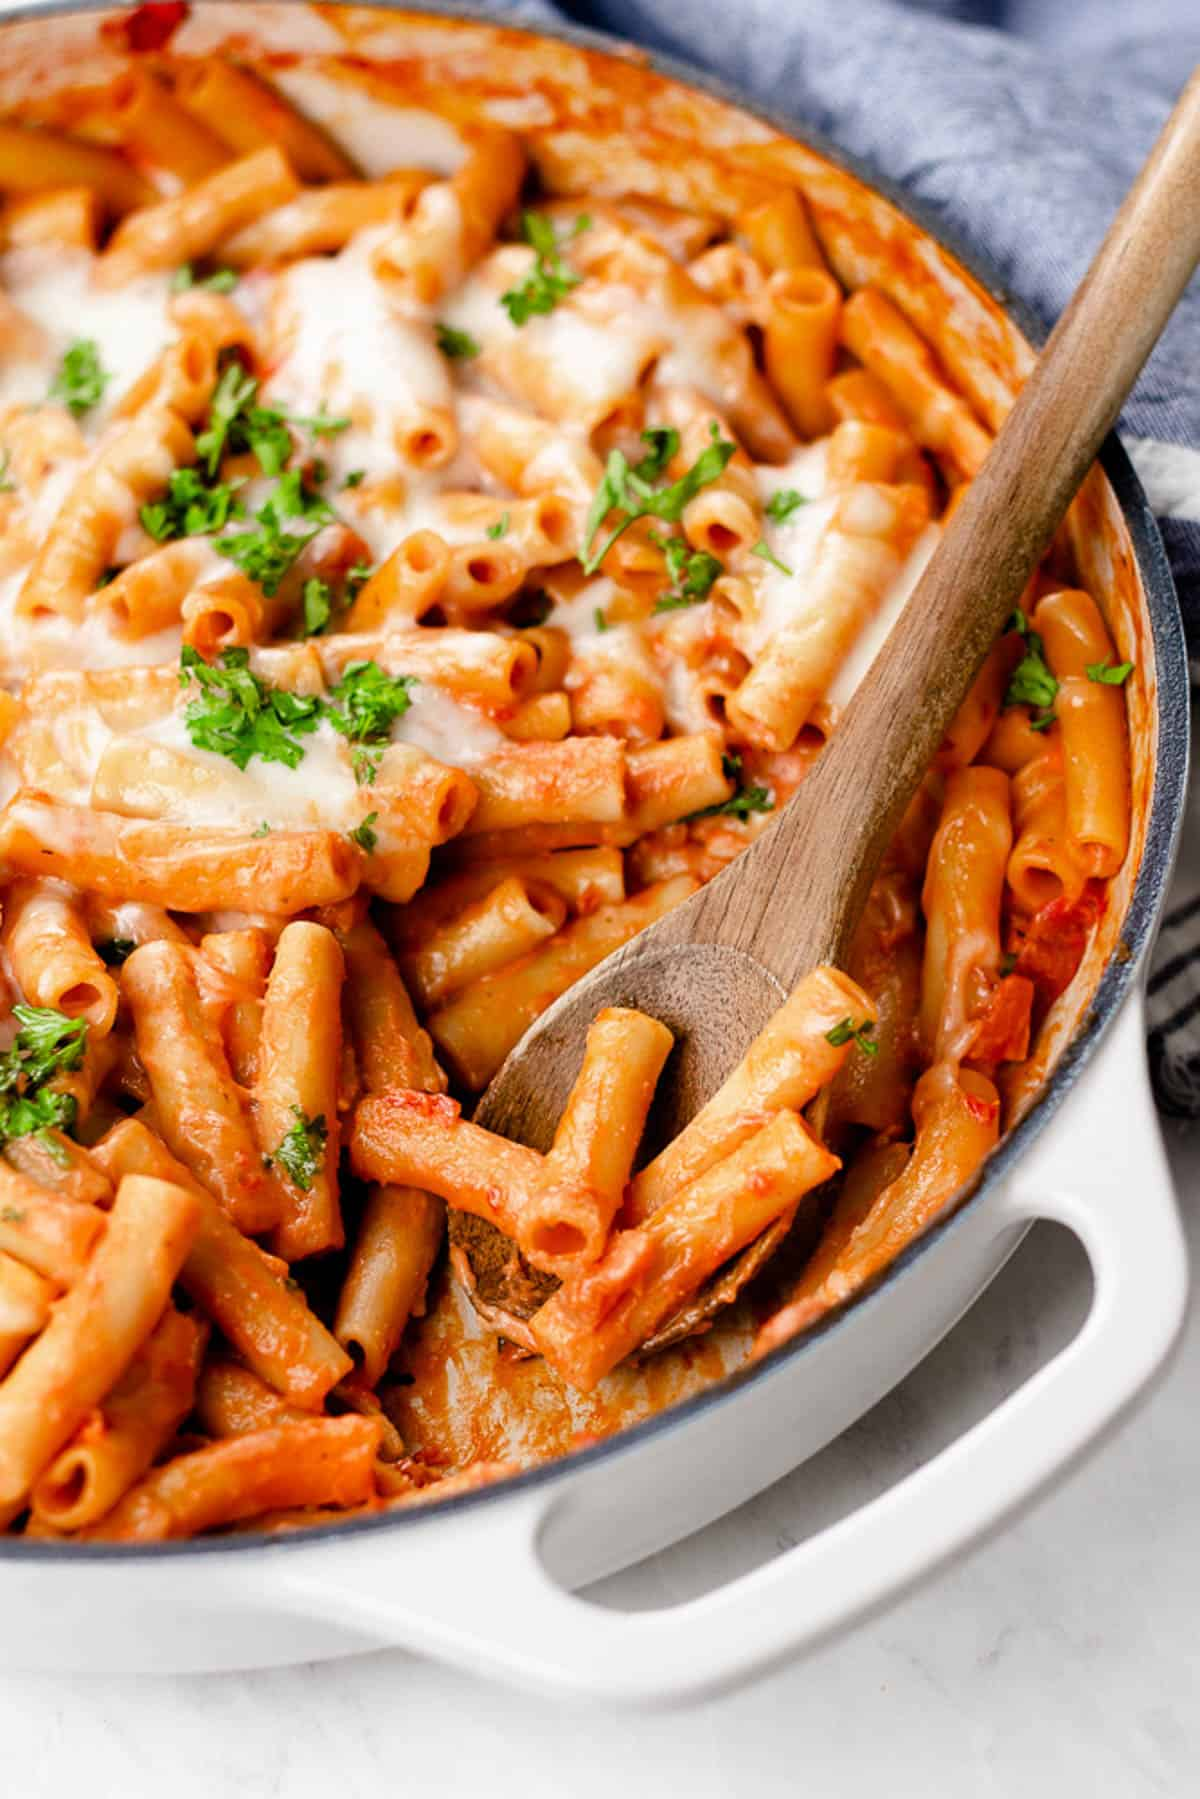 Cheesy baked ziti in a white casserole pan.